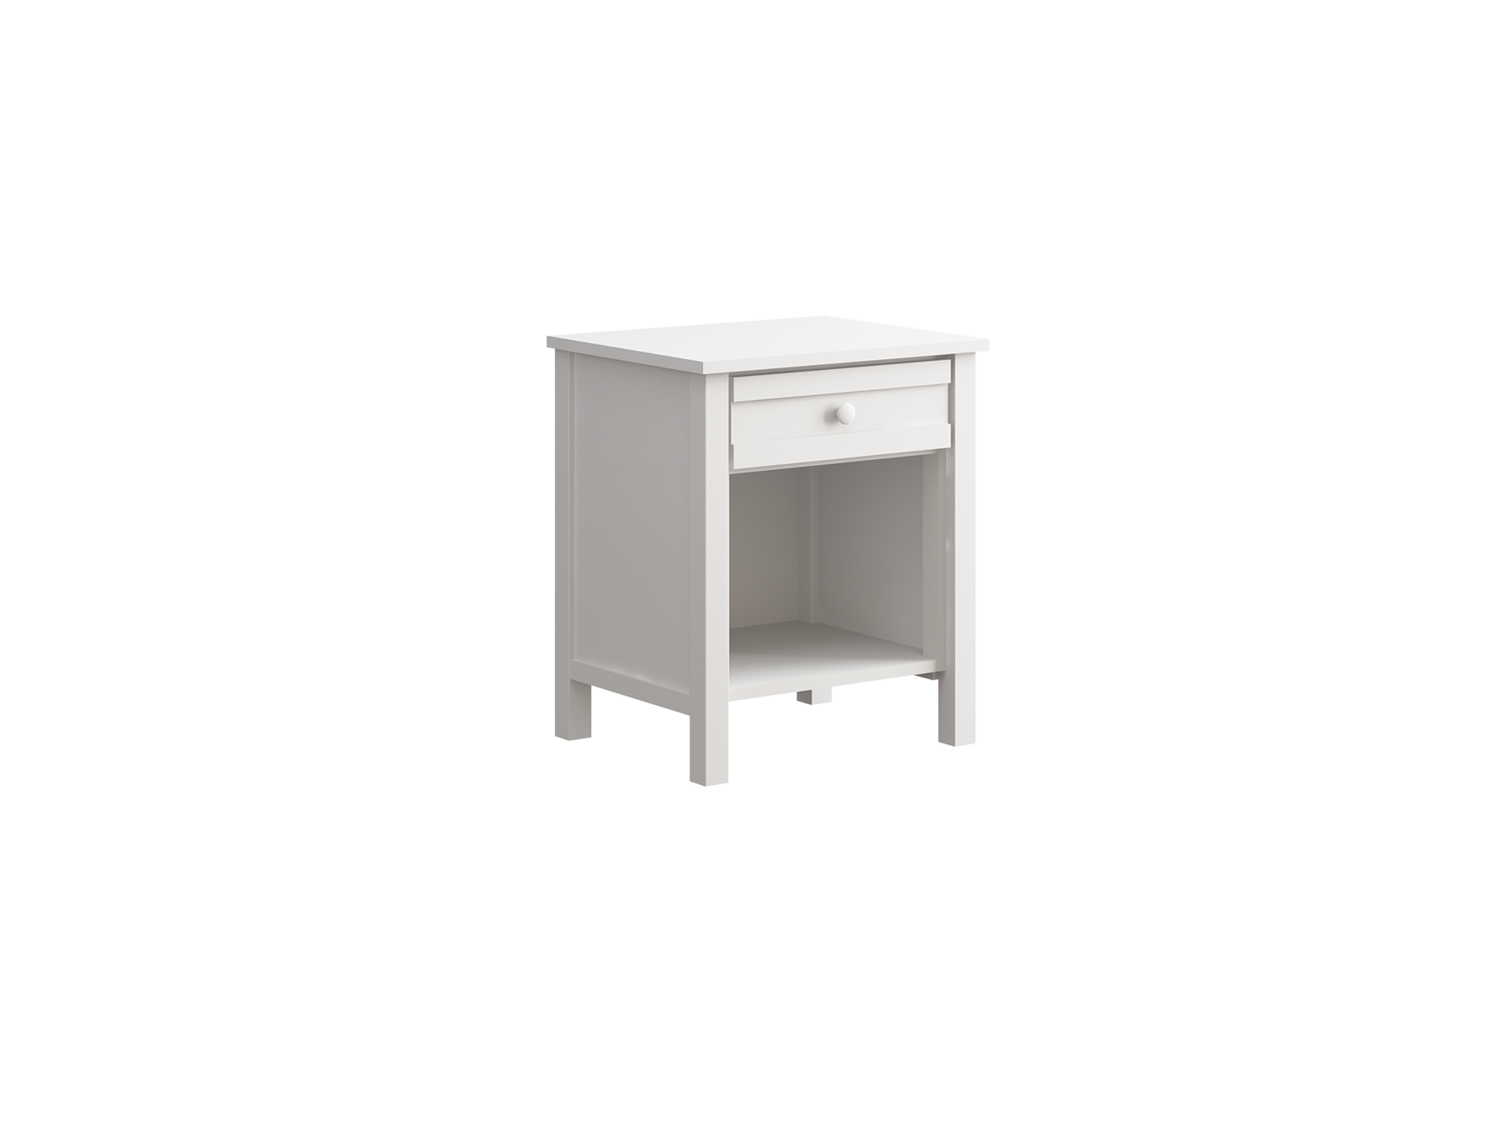 Furniture clipart night stand. Stands offspring terrace in